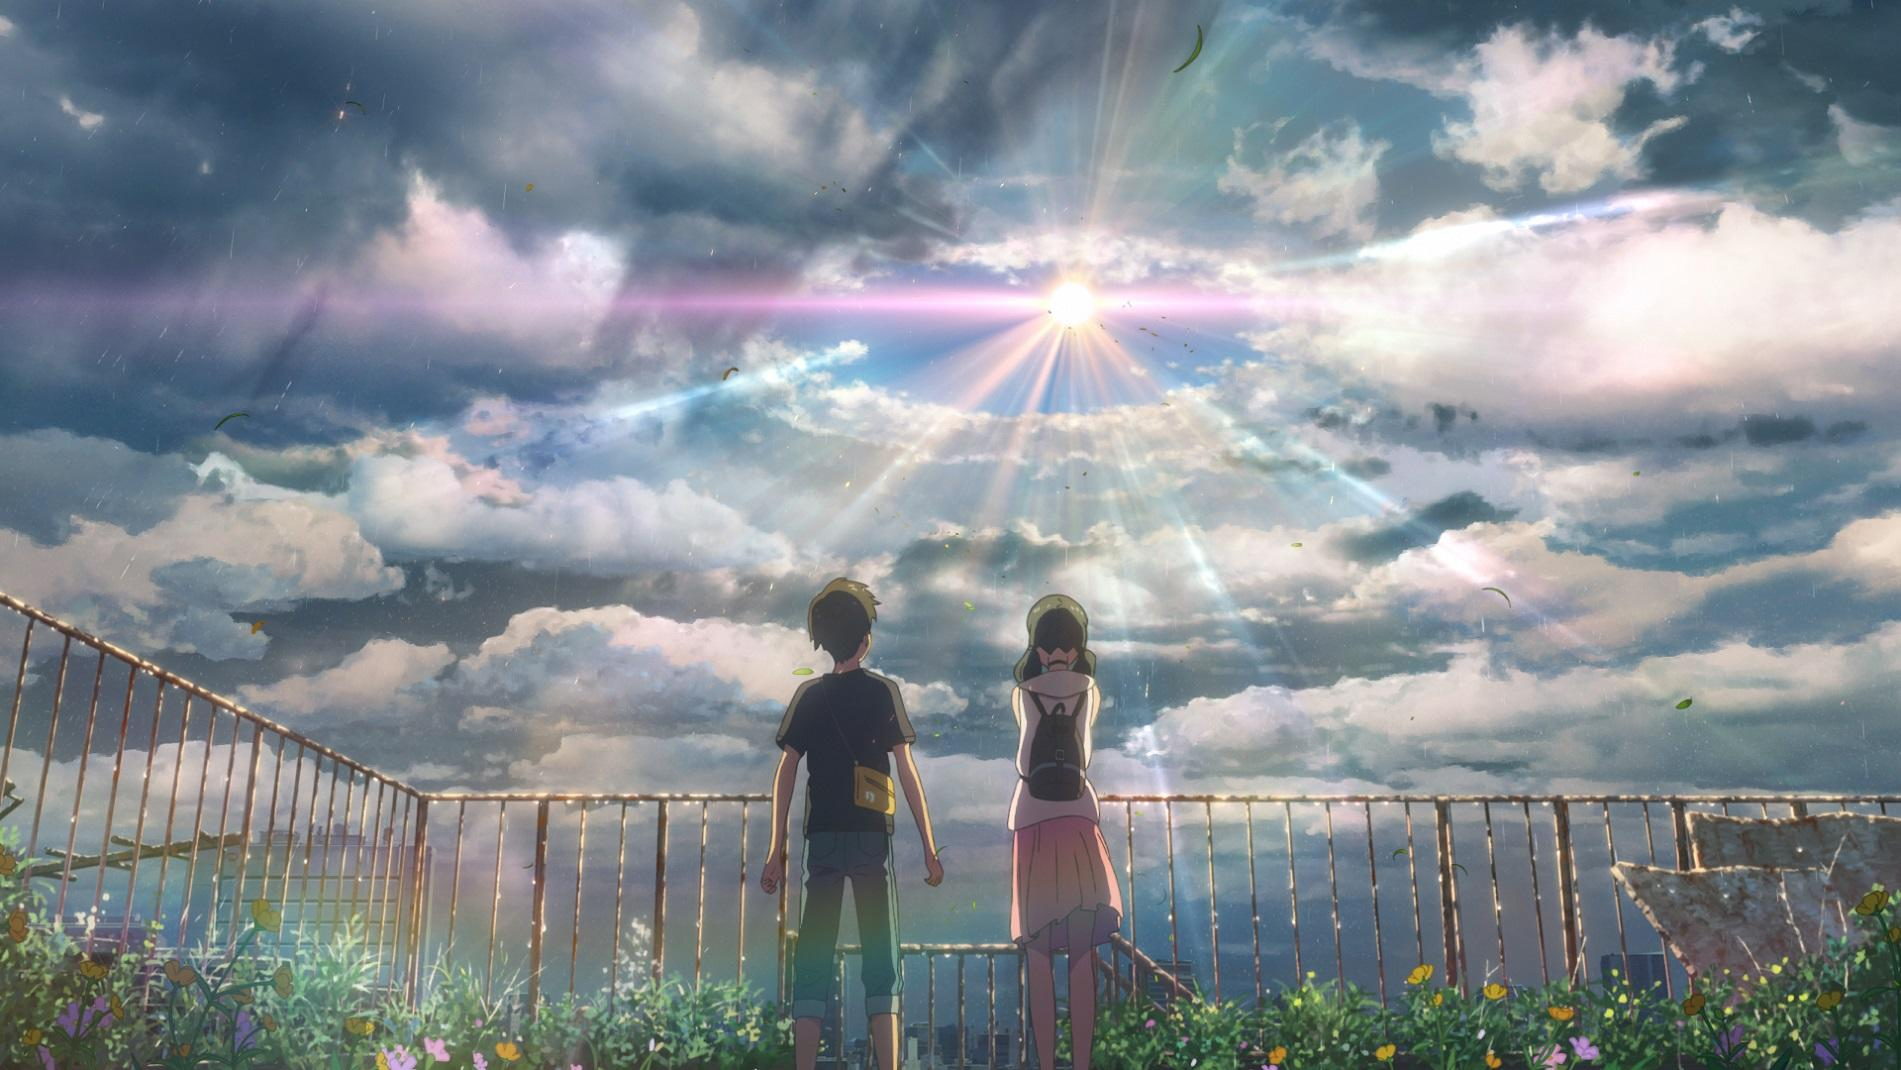 REVIEW: 'Weathering With You' is a return to form for 'Your Name' director Makoto Shinkai